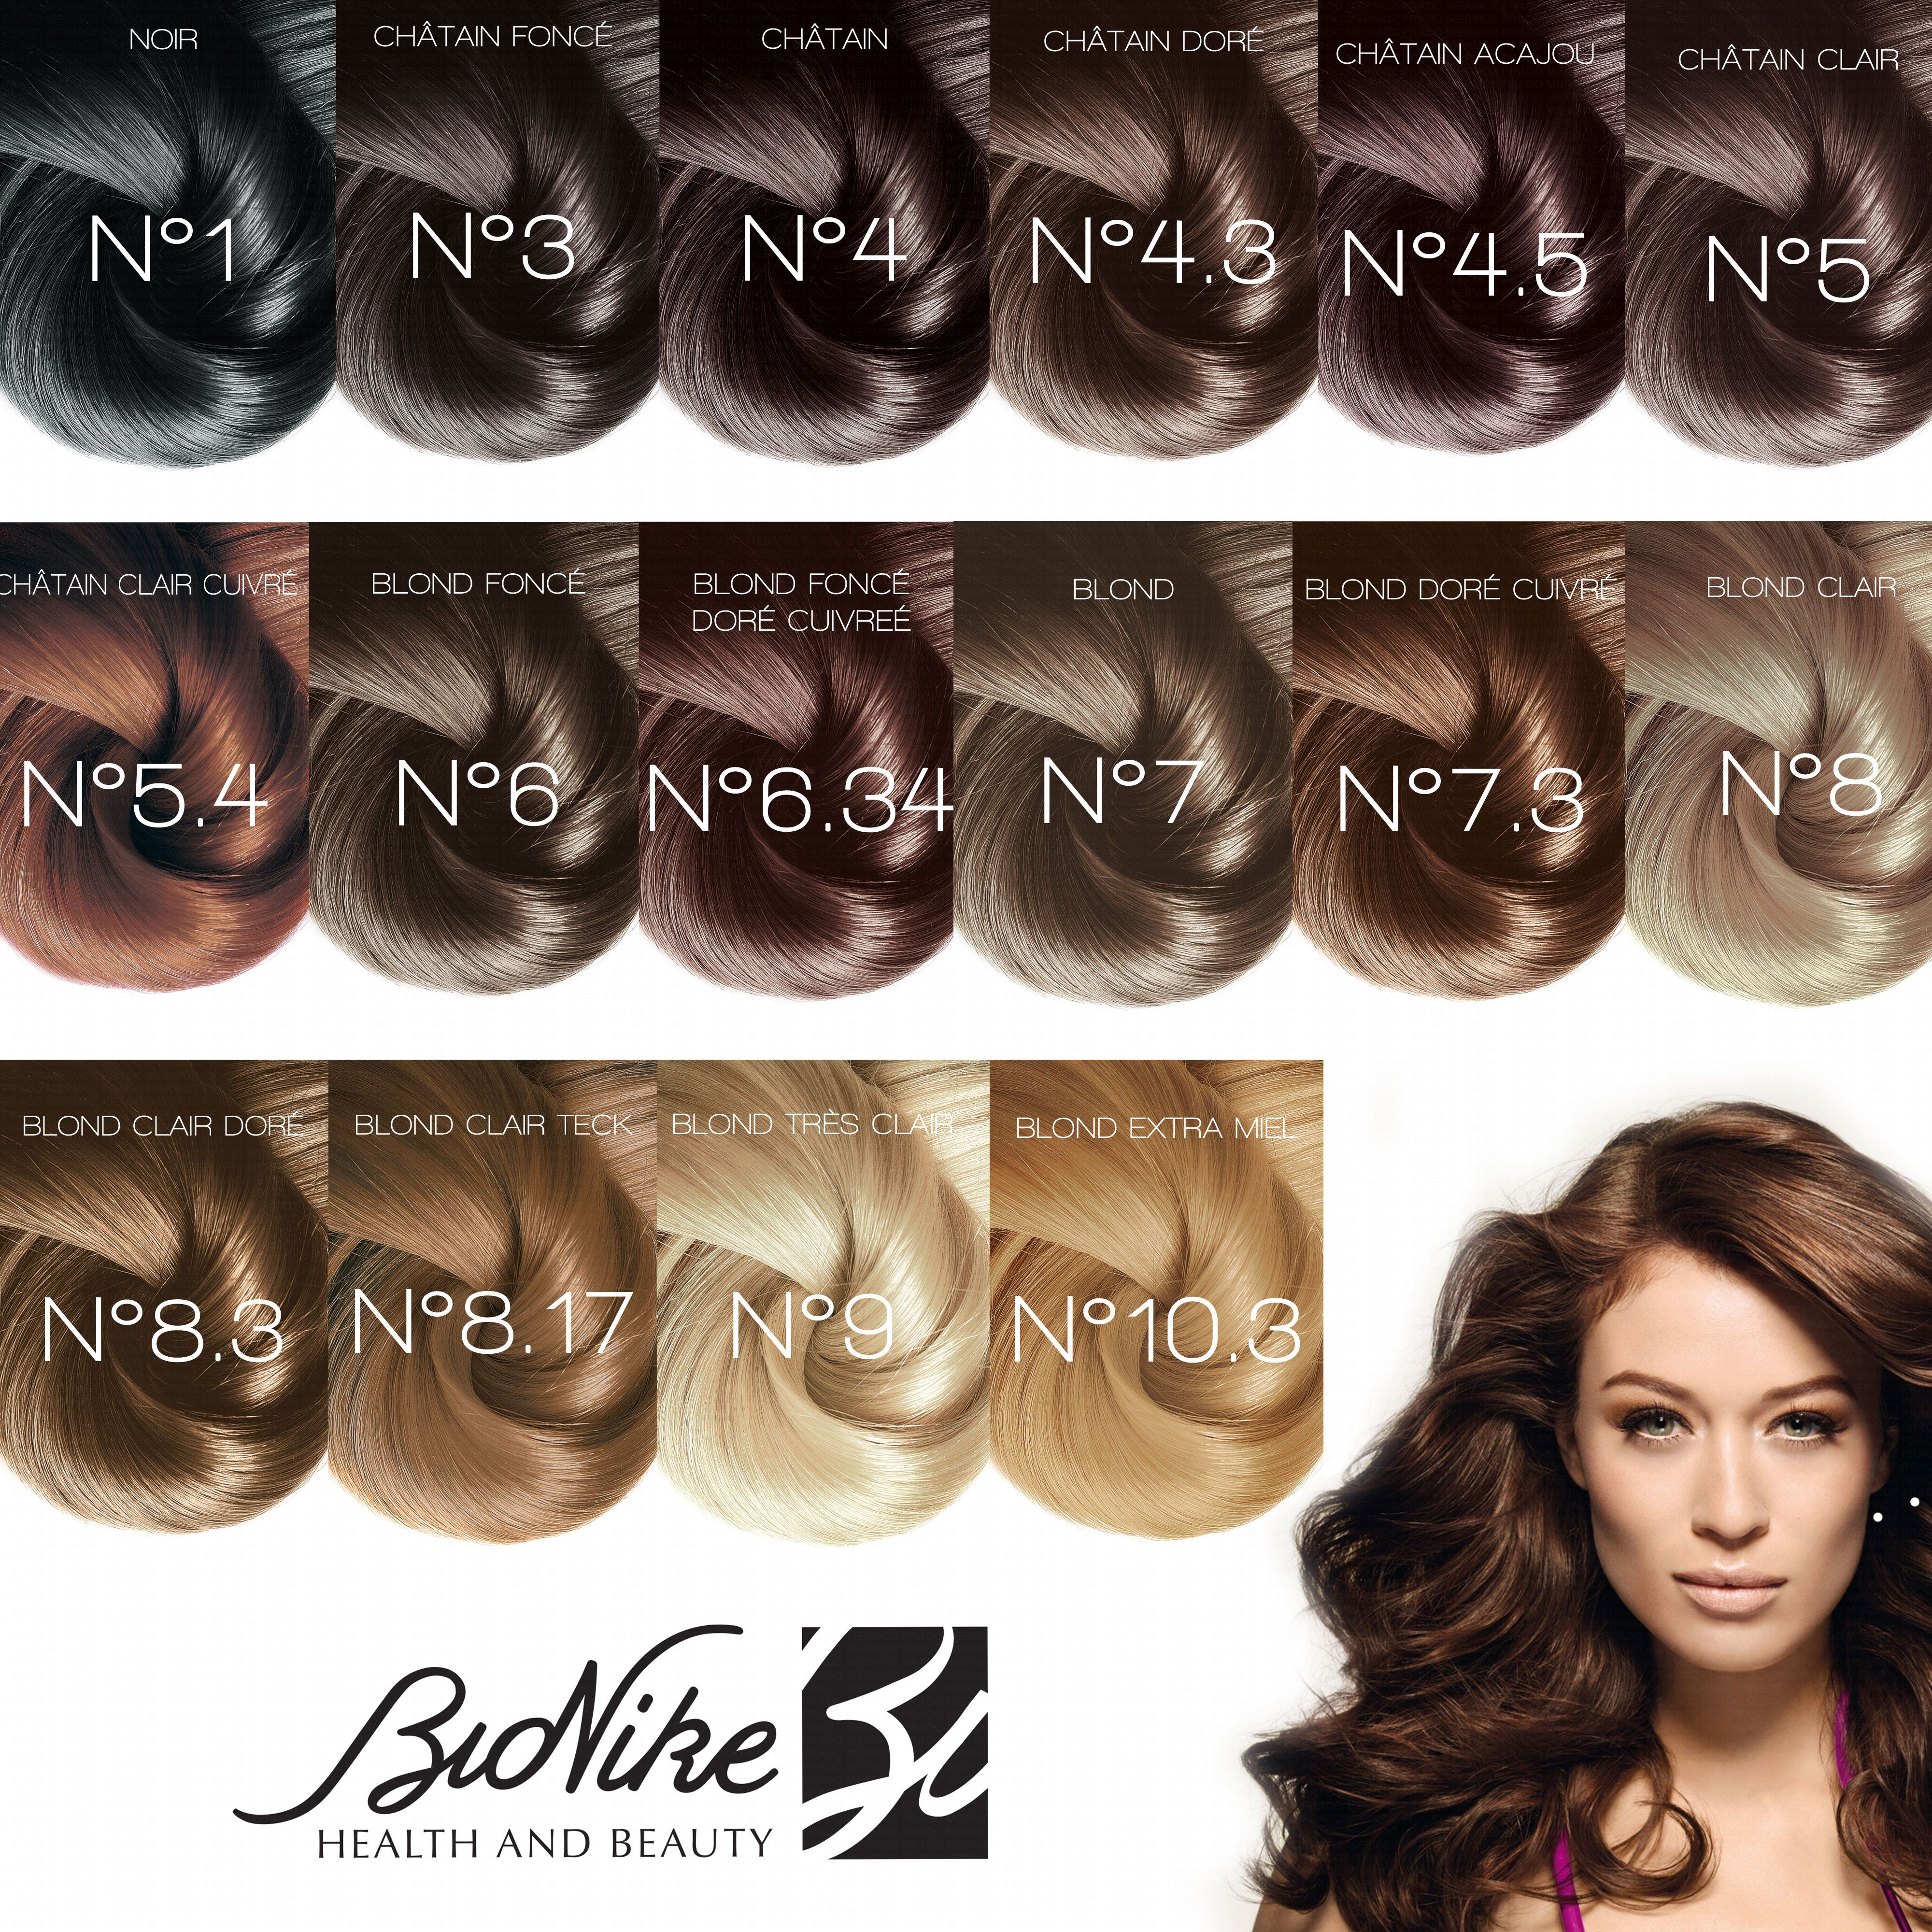 bionike shine on 73 blond dor 1 tube coloration 50ml 1 flacon rvlateur 75ml - Coloration Blond Dor